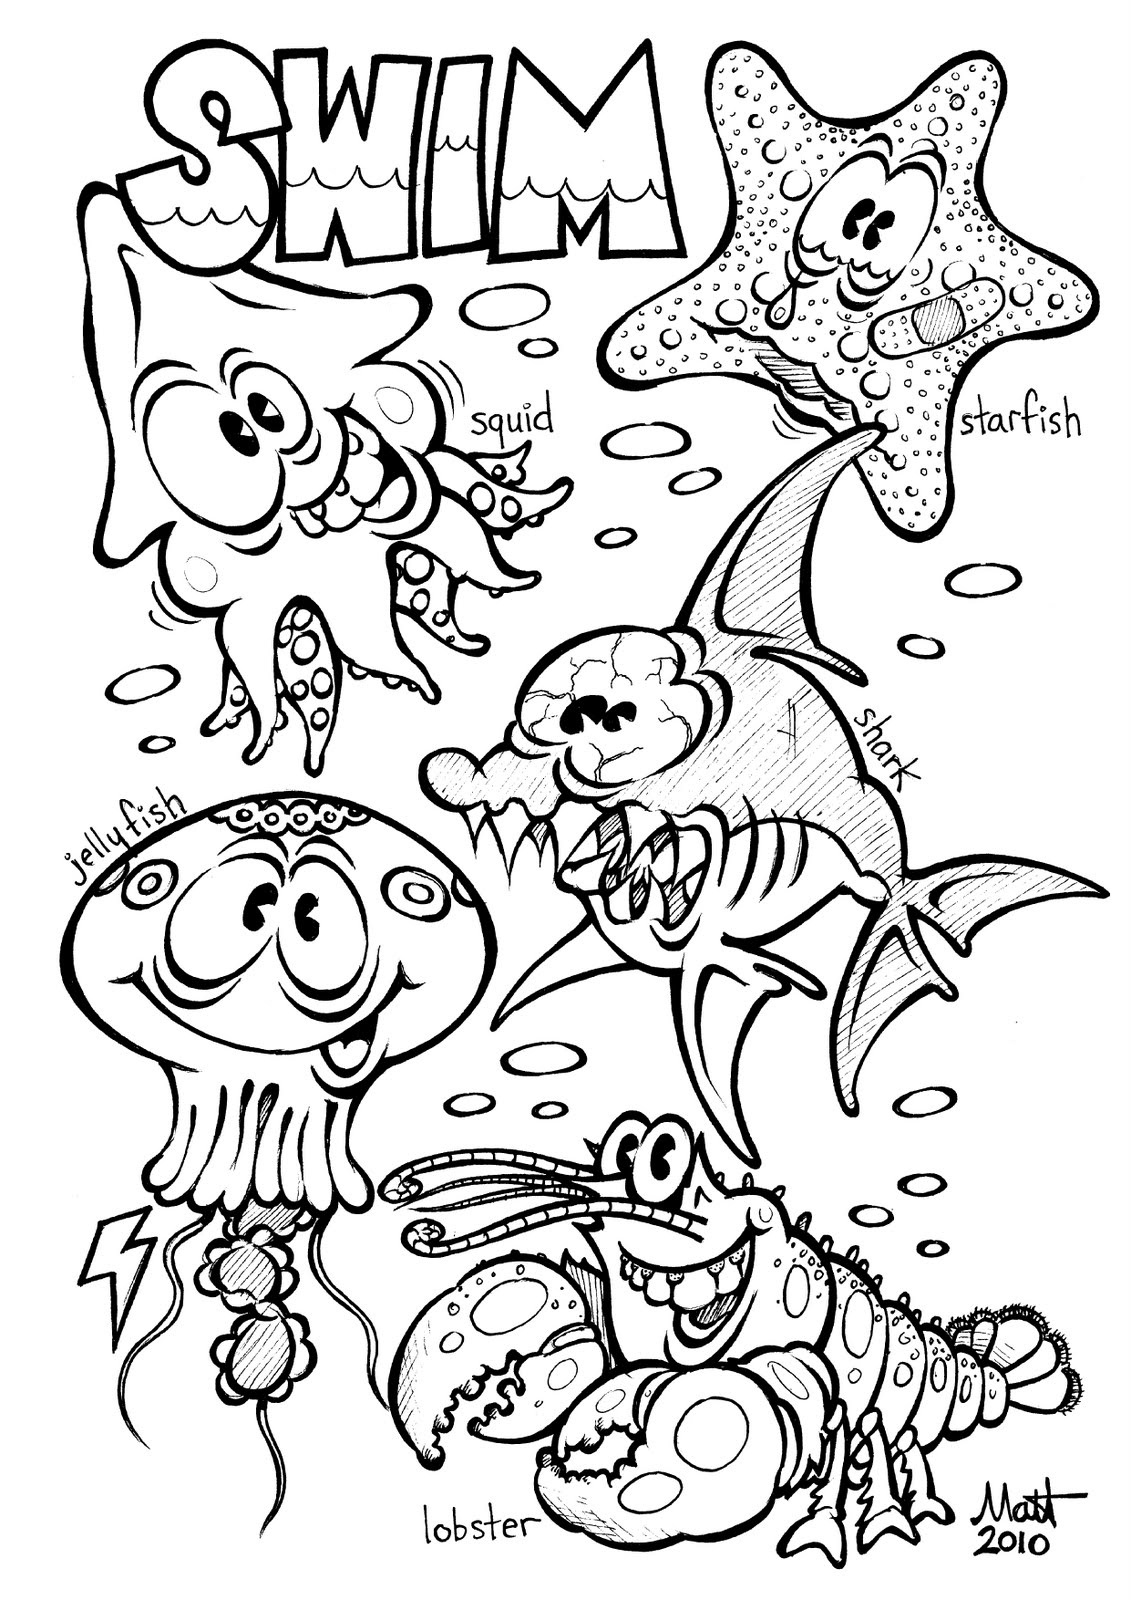 ocean animal coloring pages - Coloring Pages Animals Printable